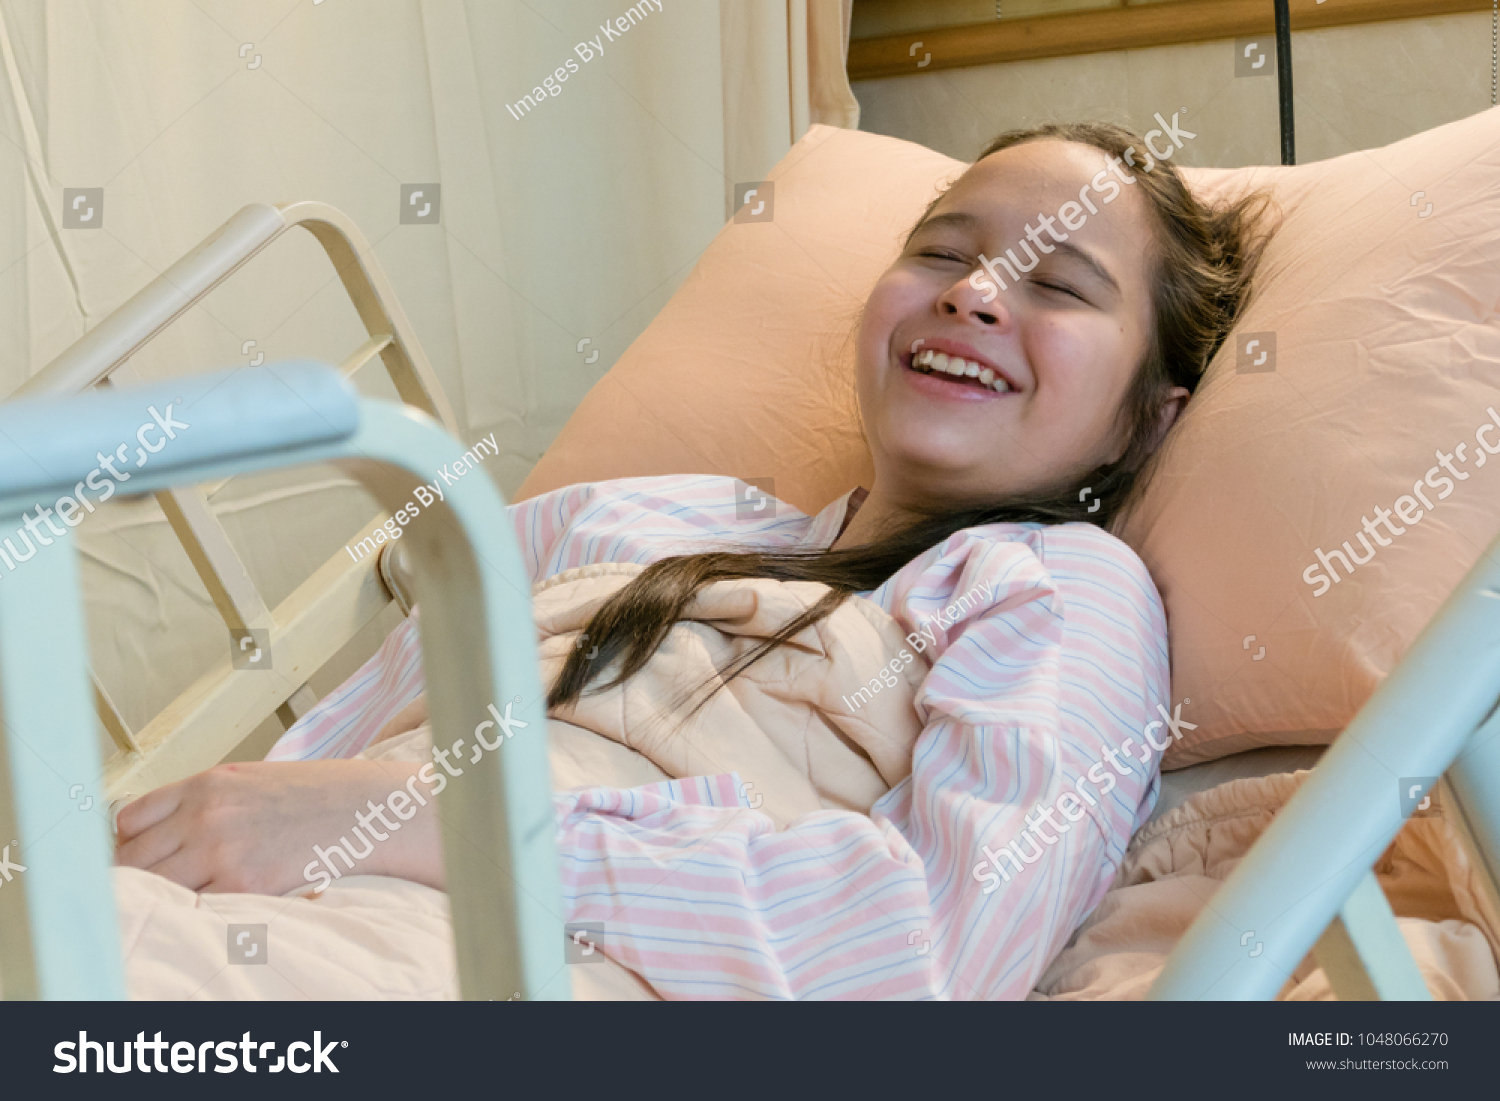 Laughing mixed race Asian American tween girl in hospital bed